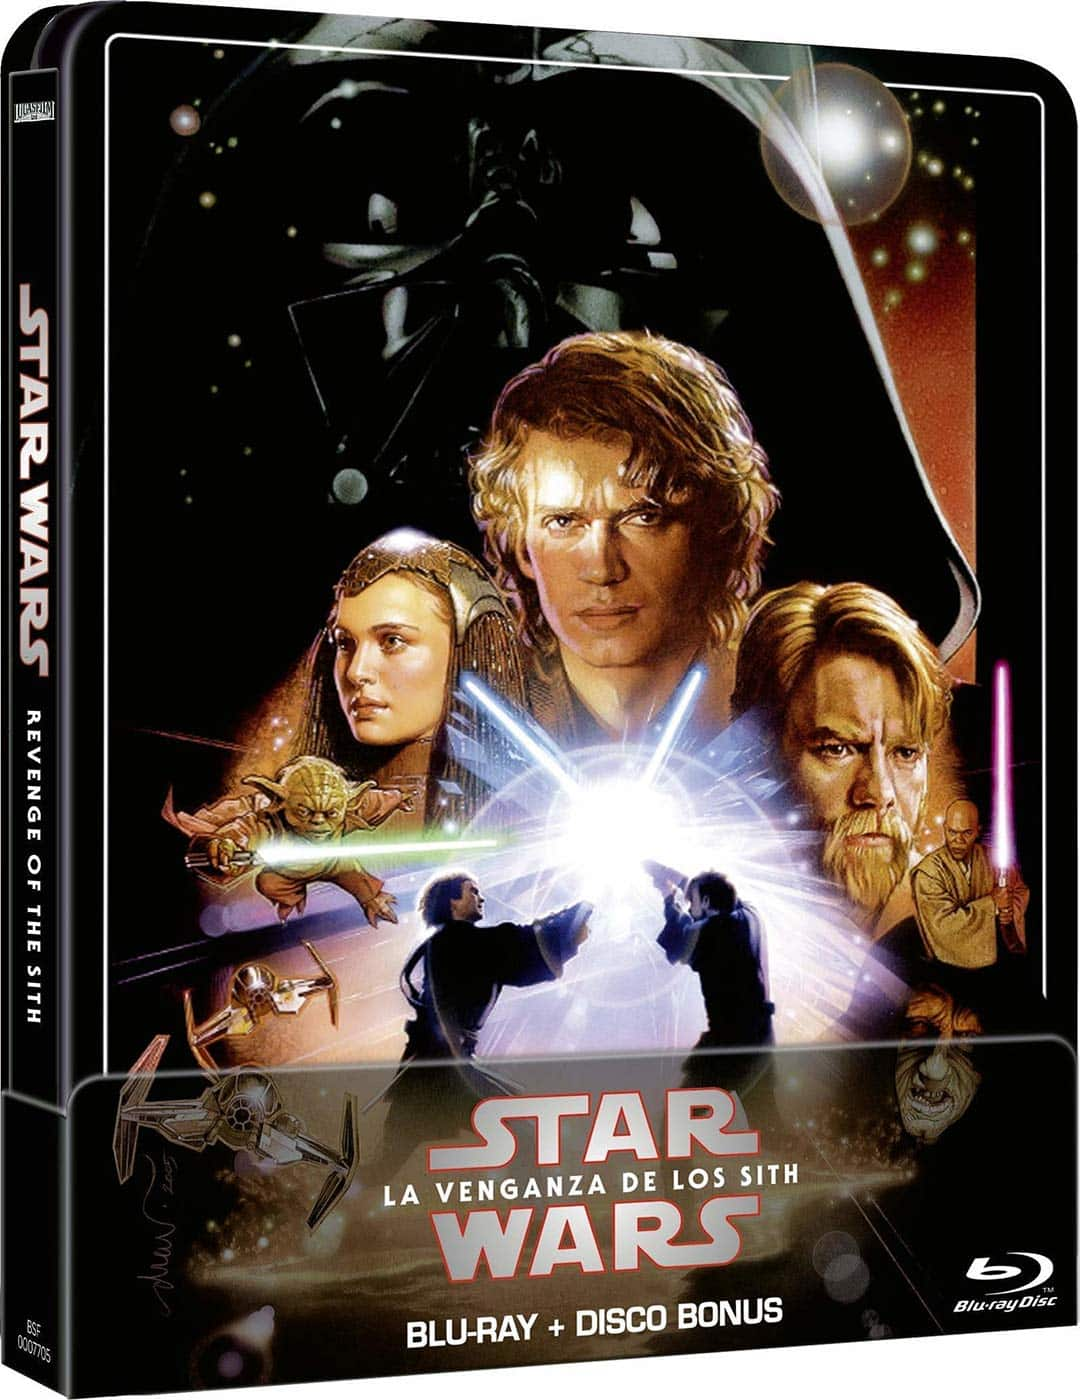 Star Wars Ep III: Revenge of the Sith (Remastered Edition) - 2 Disc Steelbook (Movie + Extras) [Blu-ray]